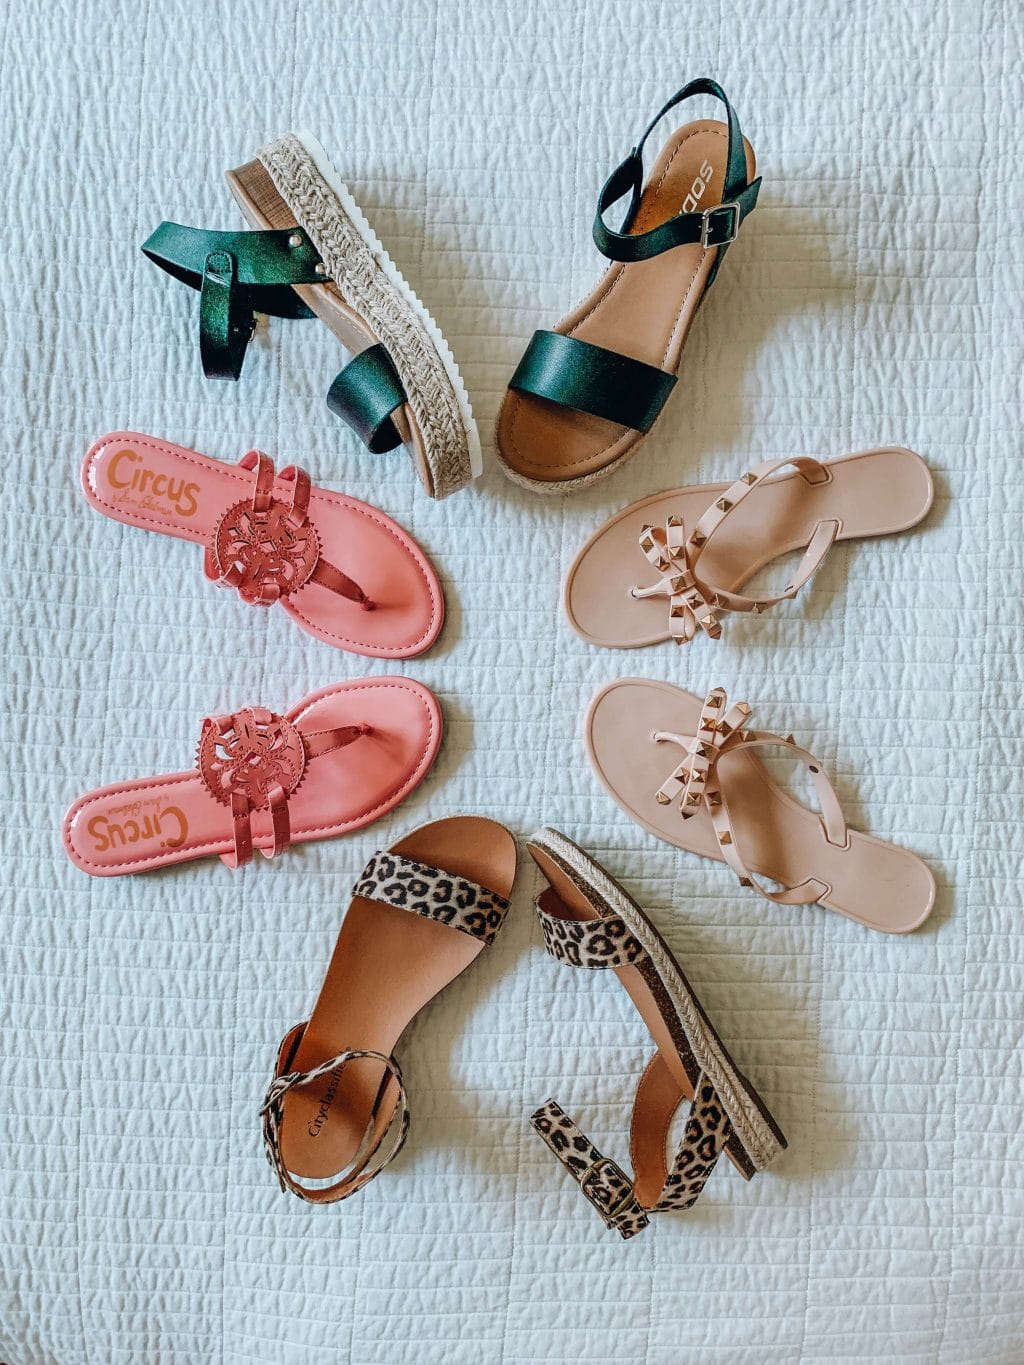 Amazon Fashion Haul, Summer Style, Stilettos and Diapers, Molly Wey, Affordable Summer Sandals